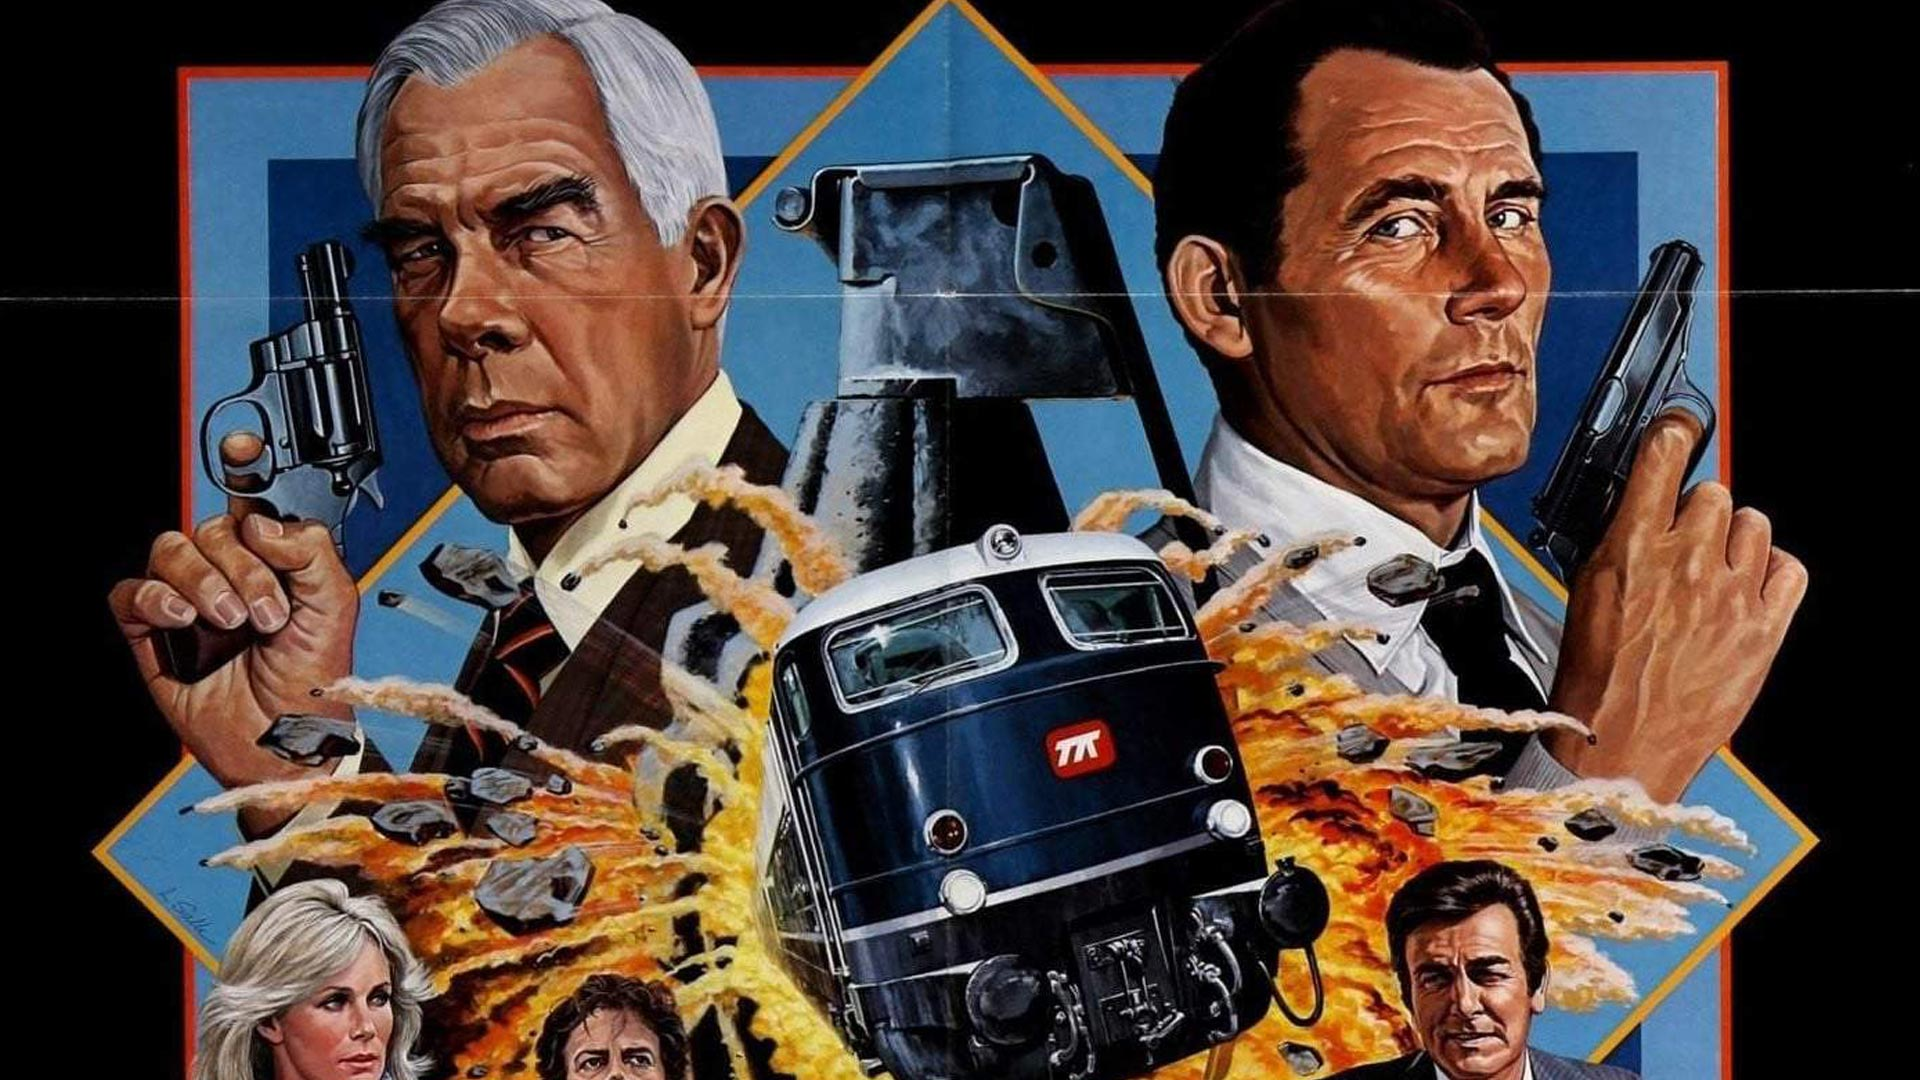 Avalanche-Express-1979-action-movie-Lee-Marvin-Robert-Shaw-poster